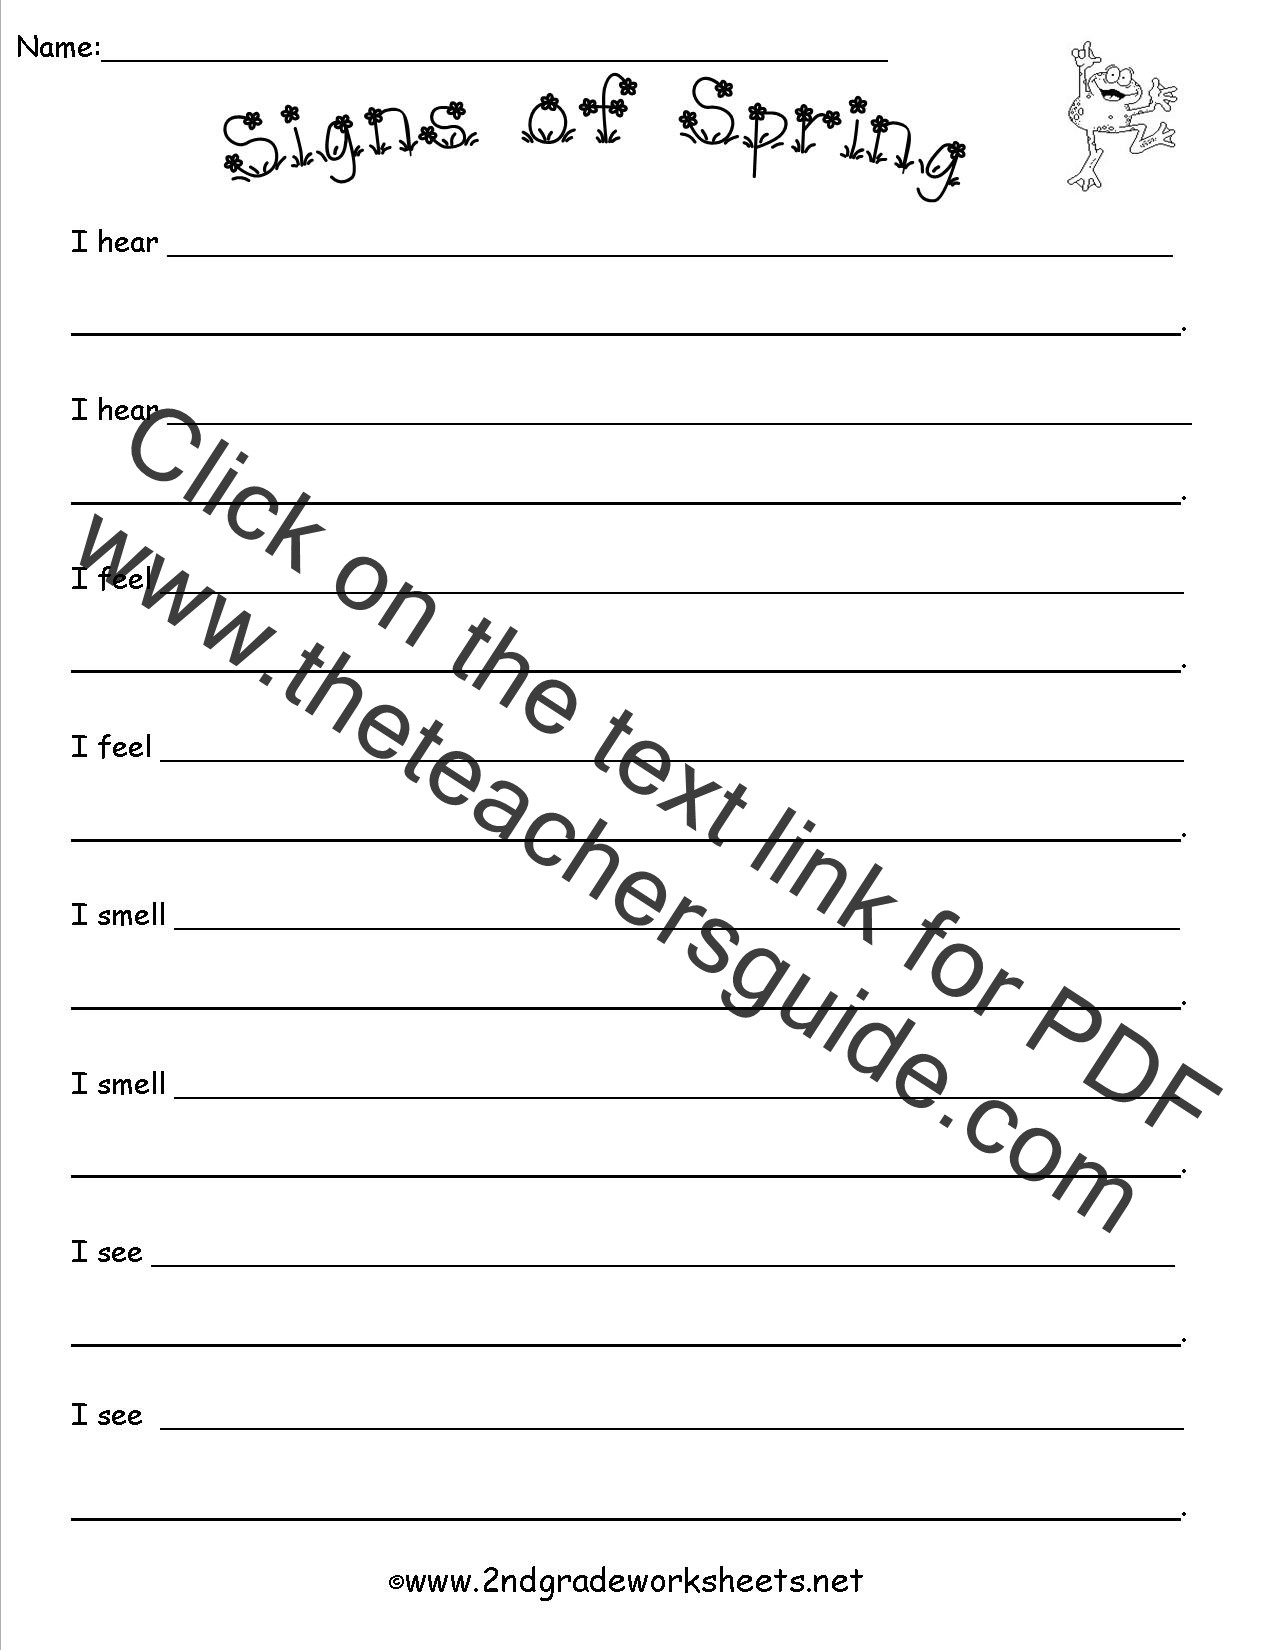 Weather Worksheets for 2nd Graders Weather Worksheet New 727 Free Weather Related Worksheets